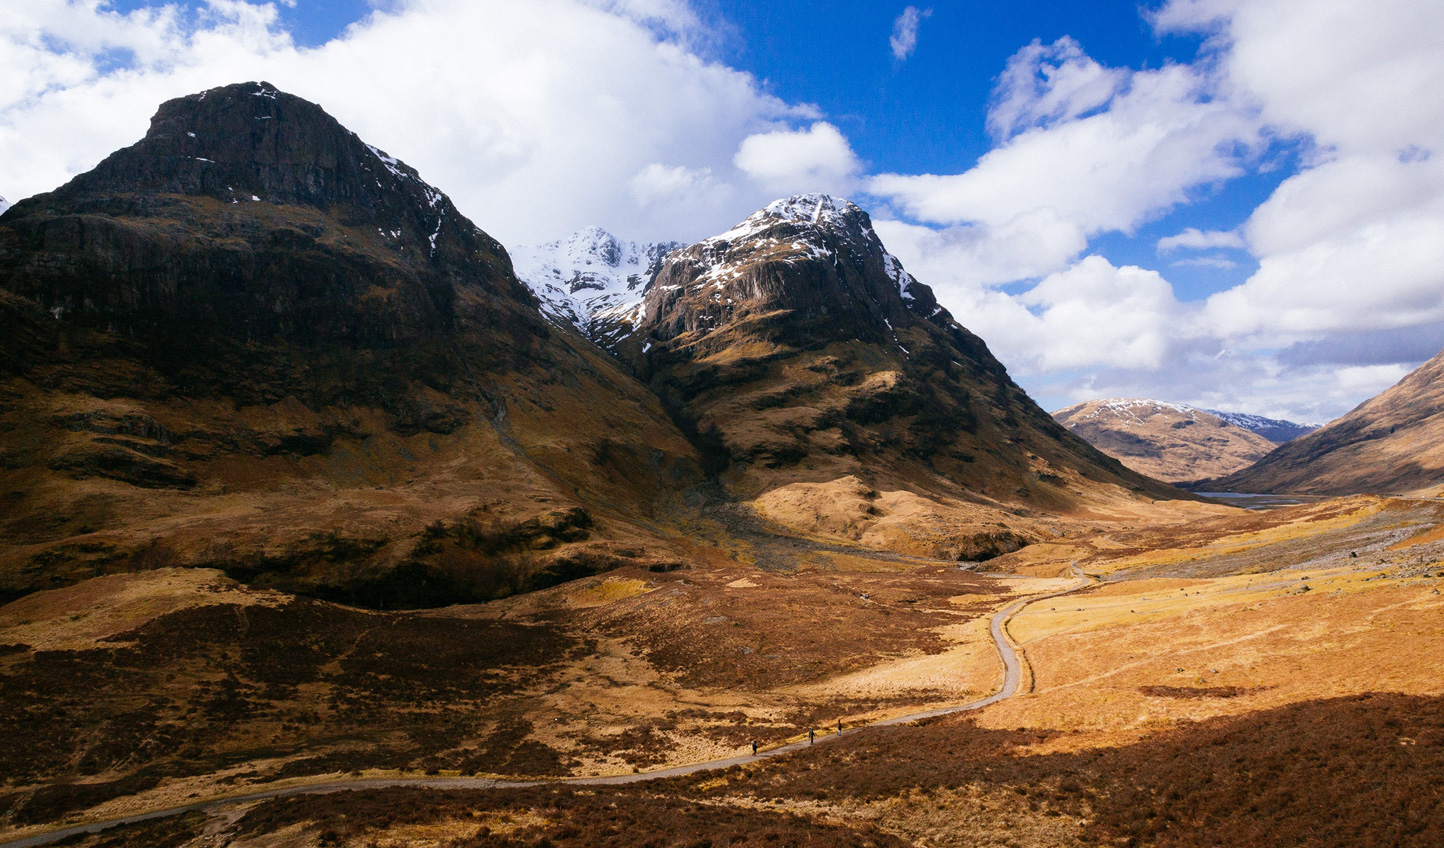 Discover hidden valleys in the depths of Glencoe